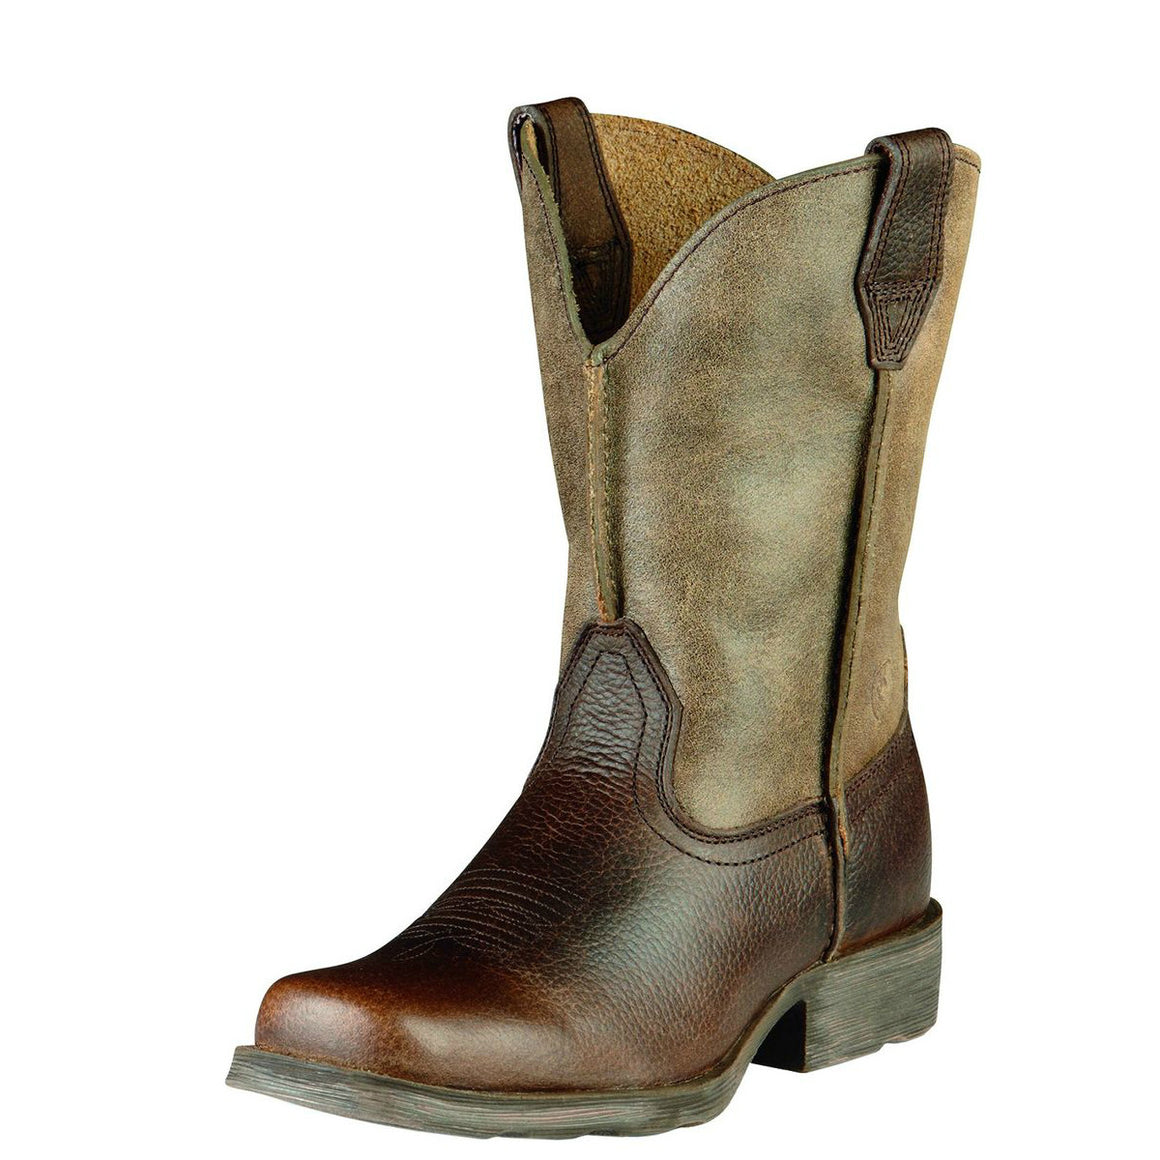 Ariat Kid's Rambler - Earth/Brown 10007602 - ShoeShackOnline